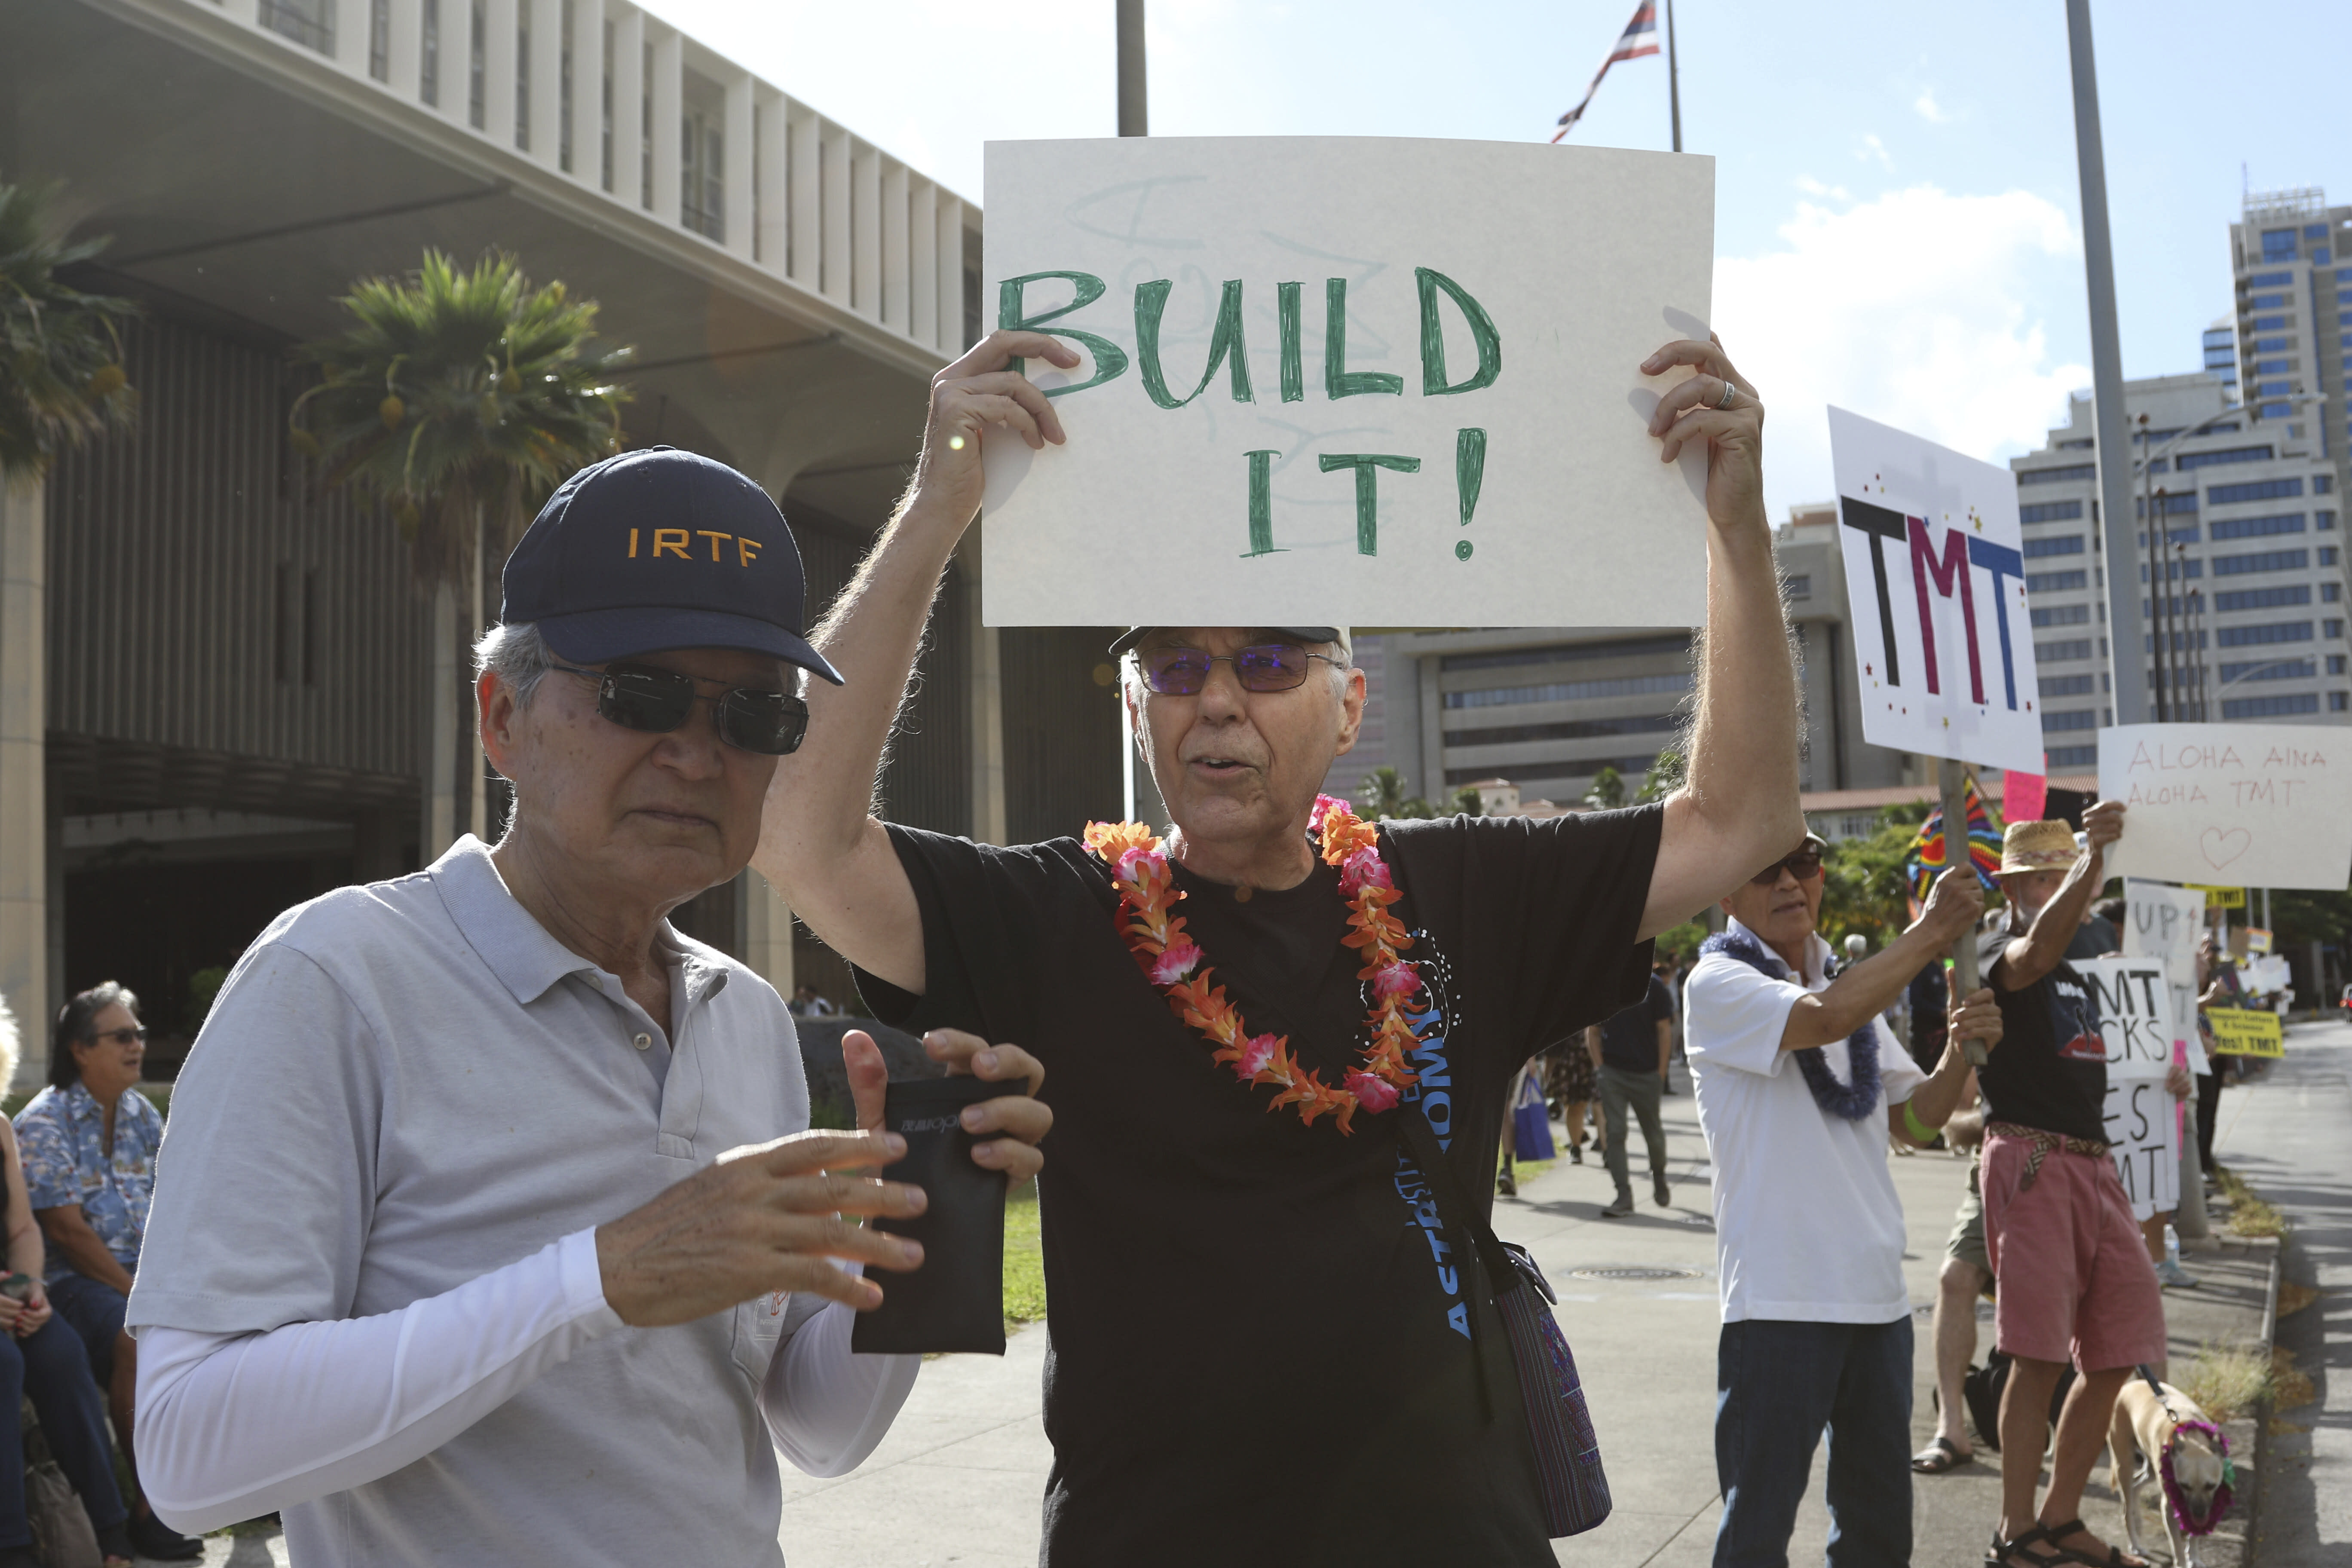 """Astronomers Alan Stockton, center, holding a sign saying """"Built It!,"""" and Alan Tokunaga, left, join a rally in support the Thirty Meter Telescope outside the Hawaii State Capitol in Honolulu on Thursday, July 25, 2019. Supporters said the giant telescope planned for Hawaii's tallest mountain will enhance humanity's knowledge of the universe and bring quality, high-paying jobs, as protesters blocked construction for a second week. (AP Photo/Audrey McAvoy)"""